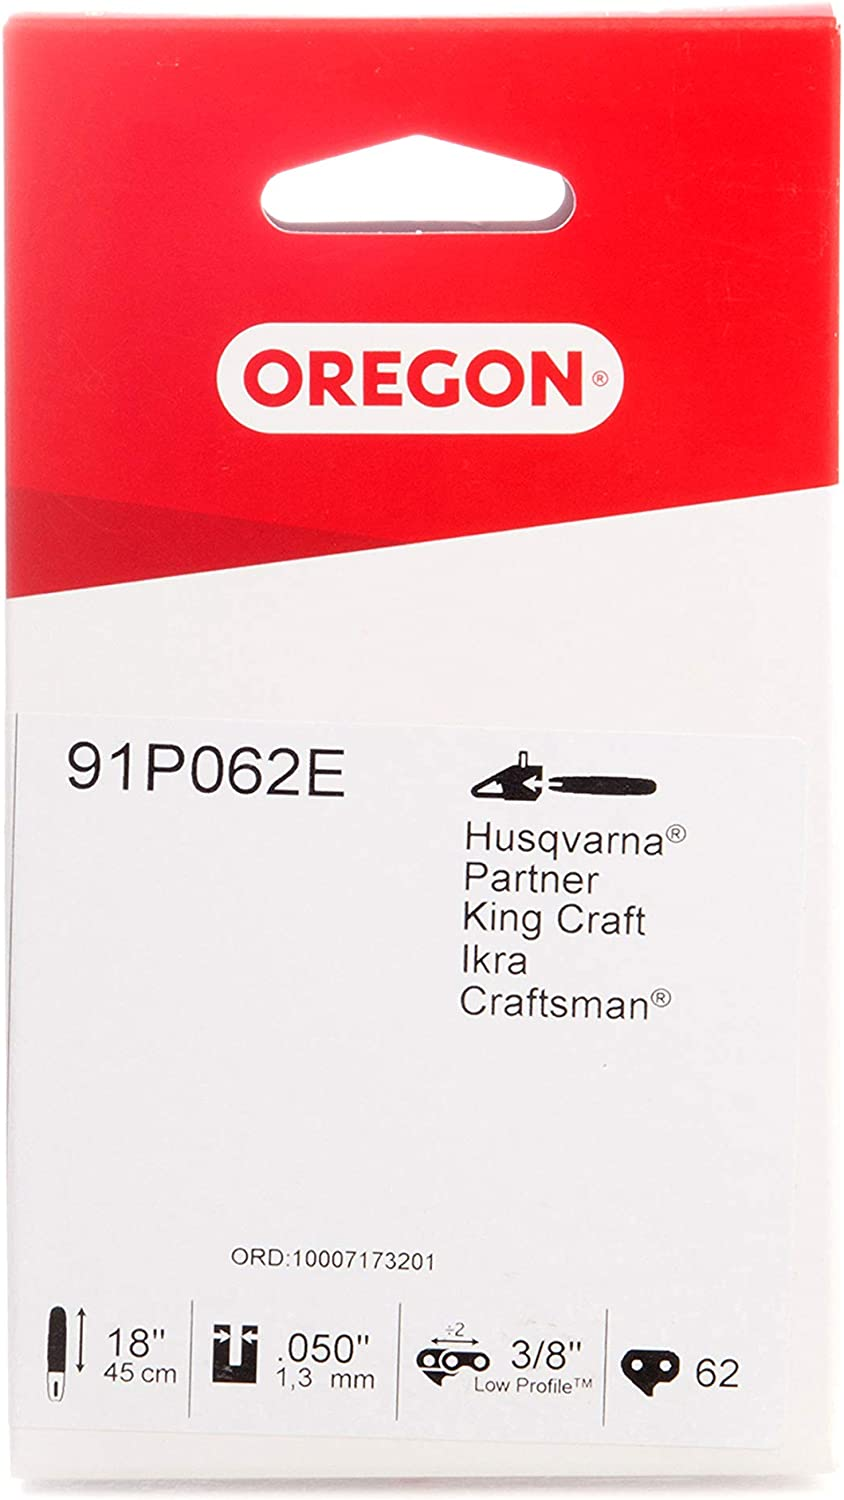 OREGON 91P 62 In stock Links 3 8'' Low-Kickback 18 Max 78% OFF 050 Chain for Chainsaw